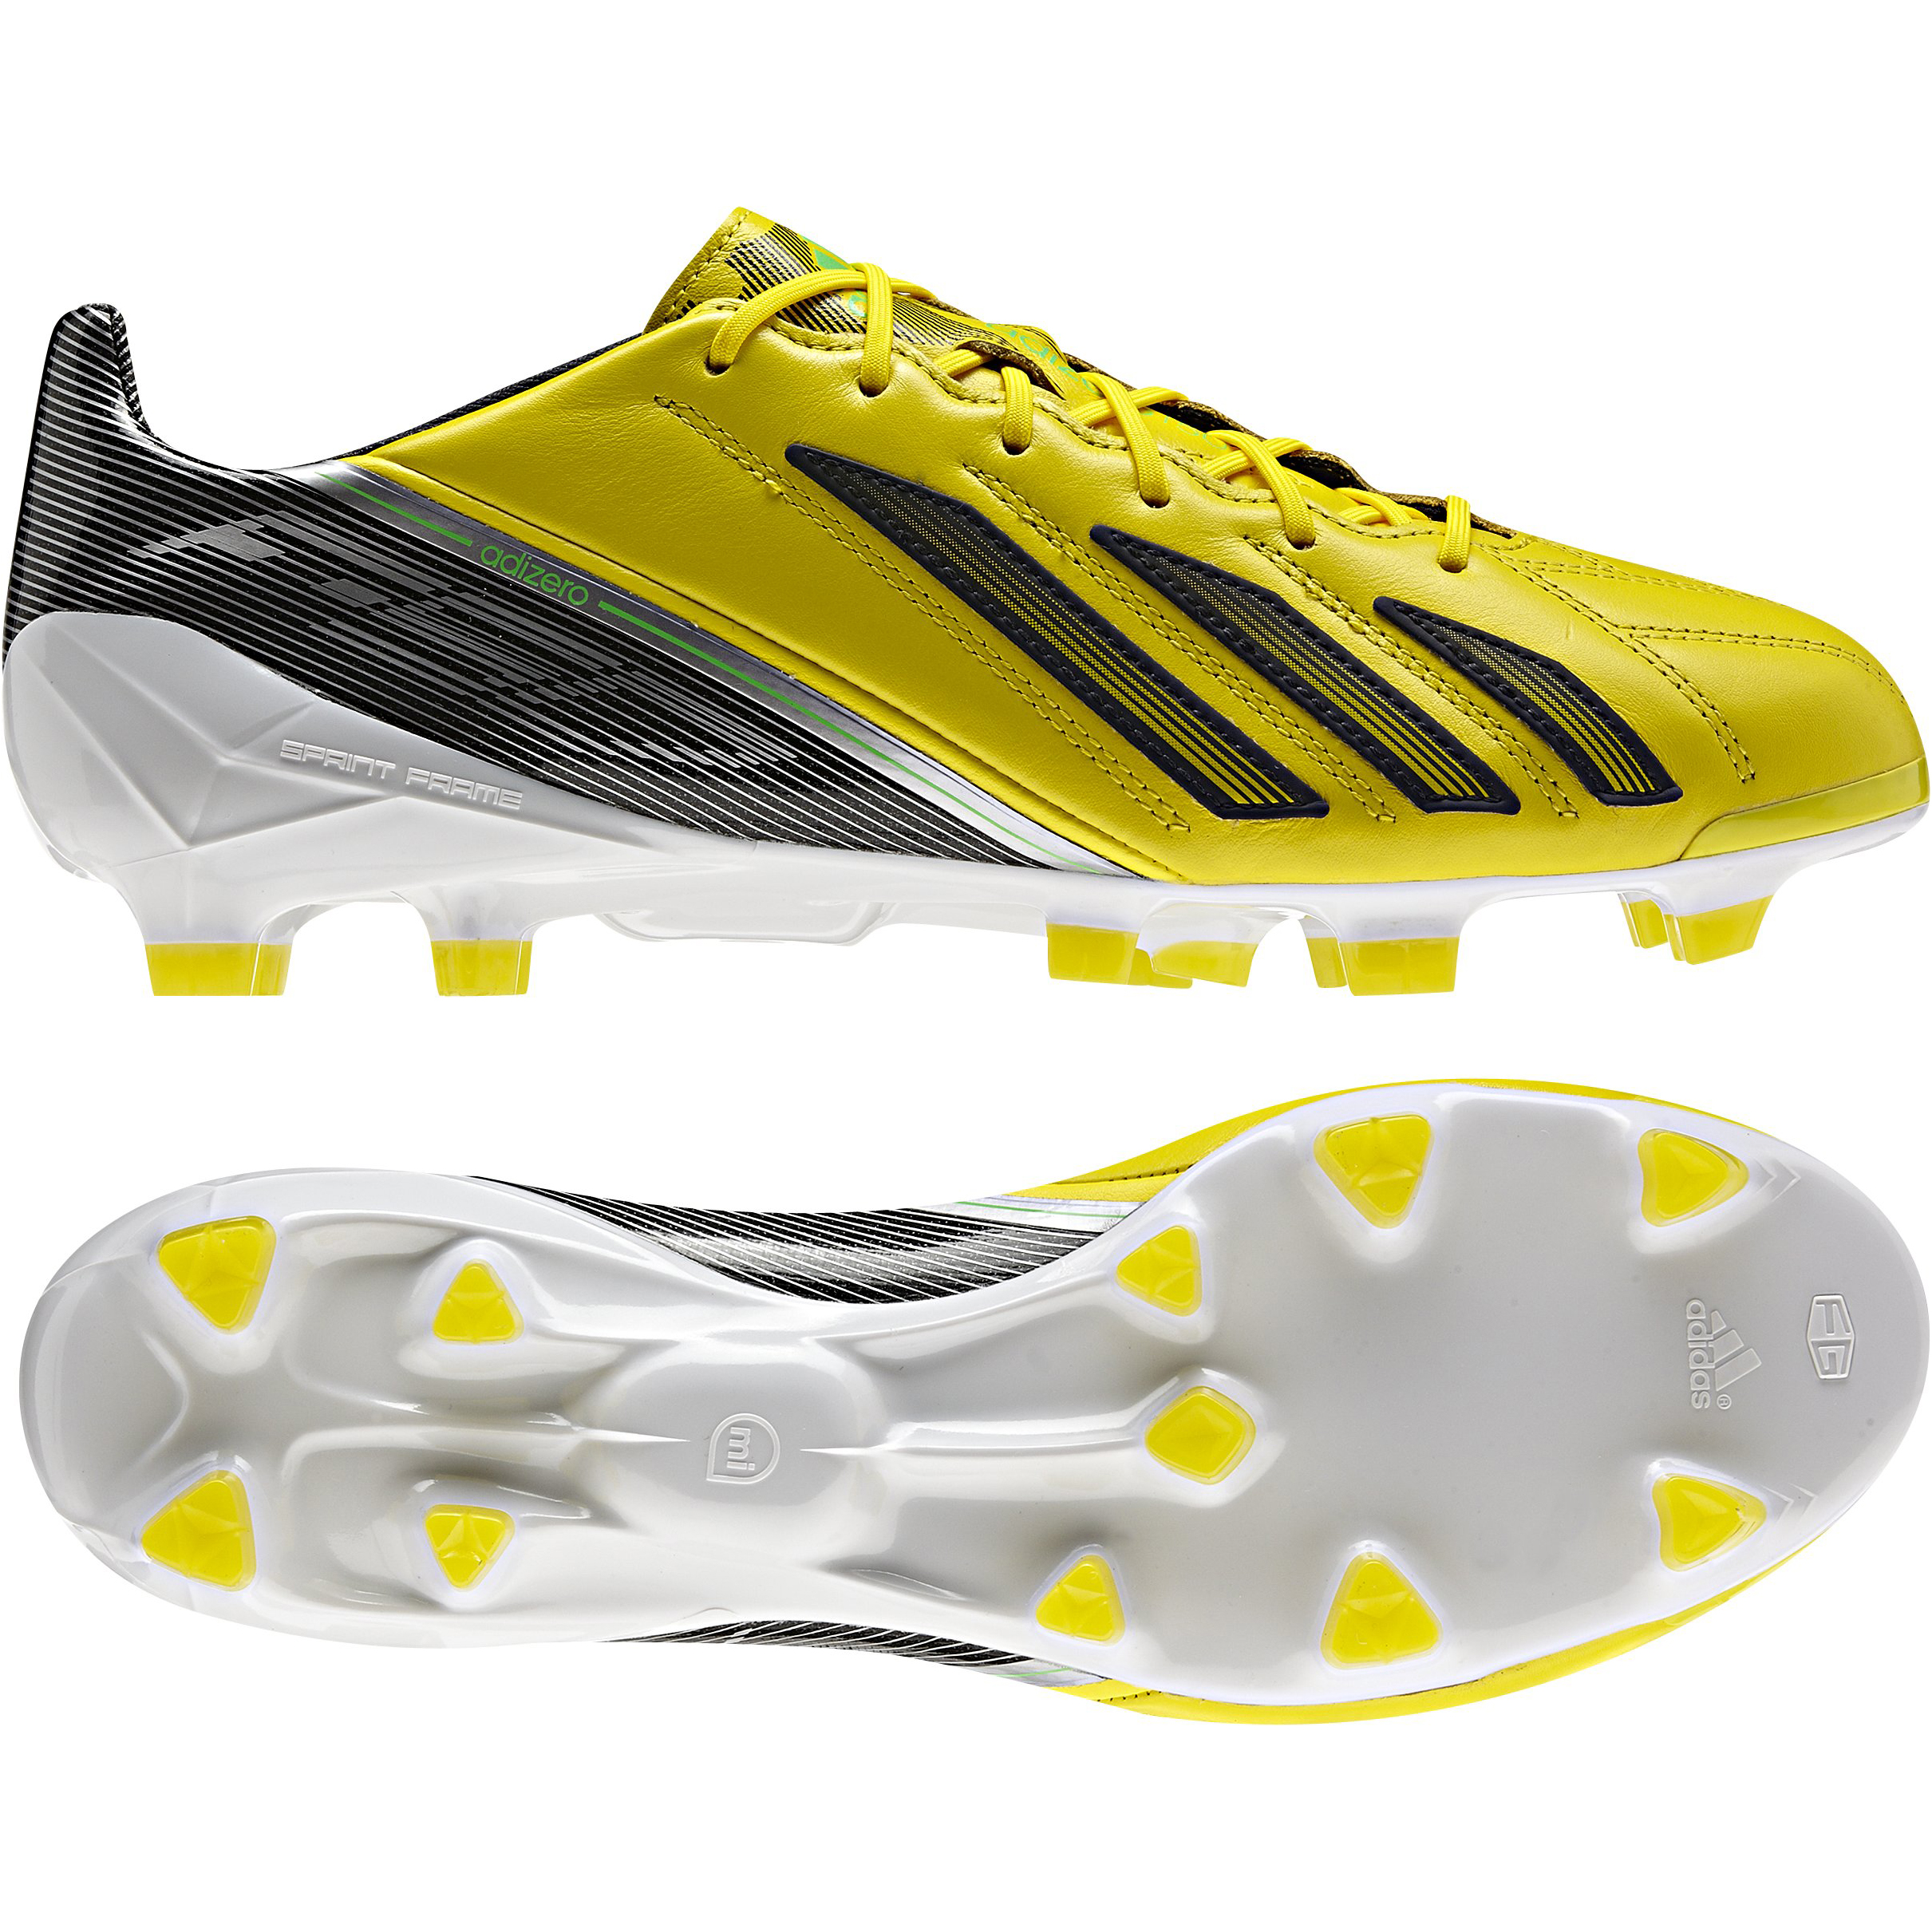 Adidas AdiZero F50 TRX Firm Ground Leather Football Boots - Vivid Yellow/Black/Green Zest